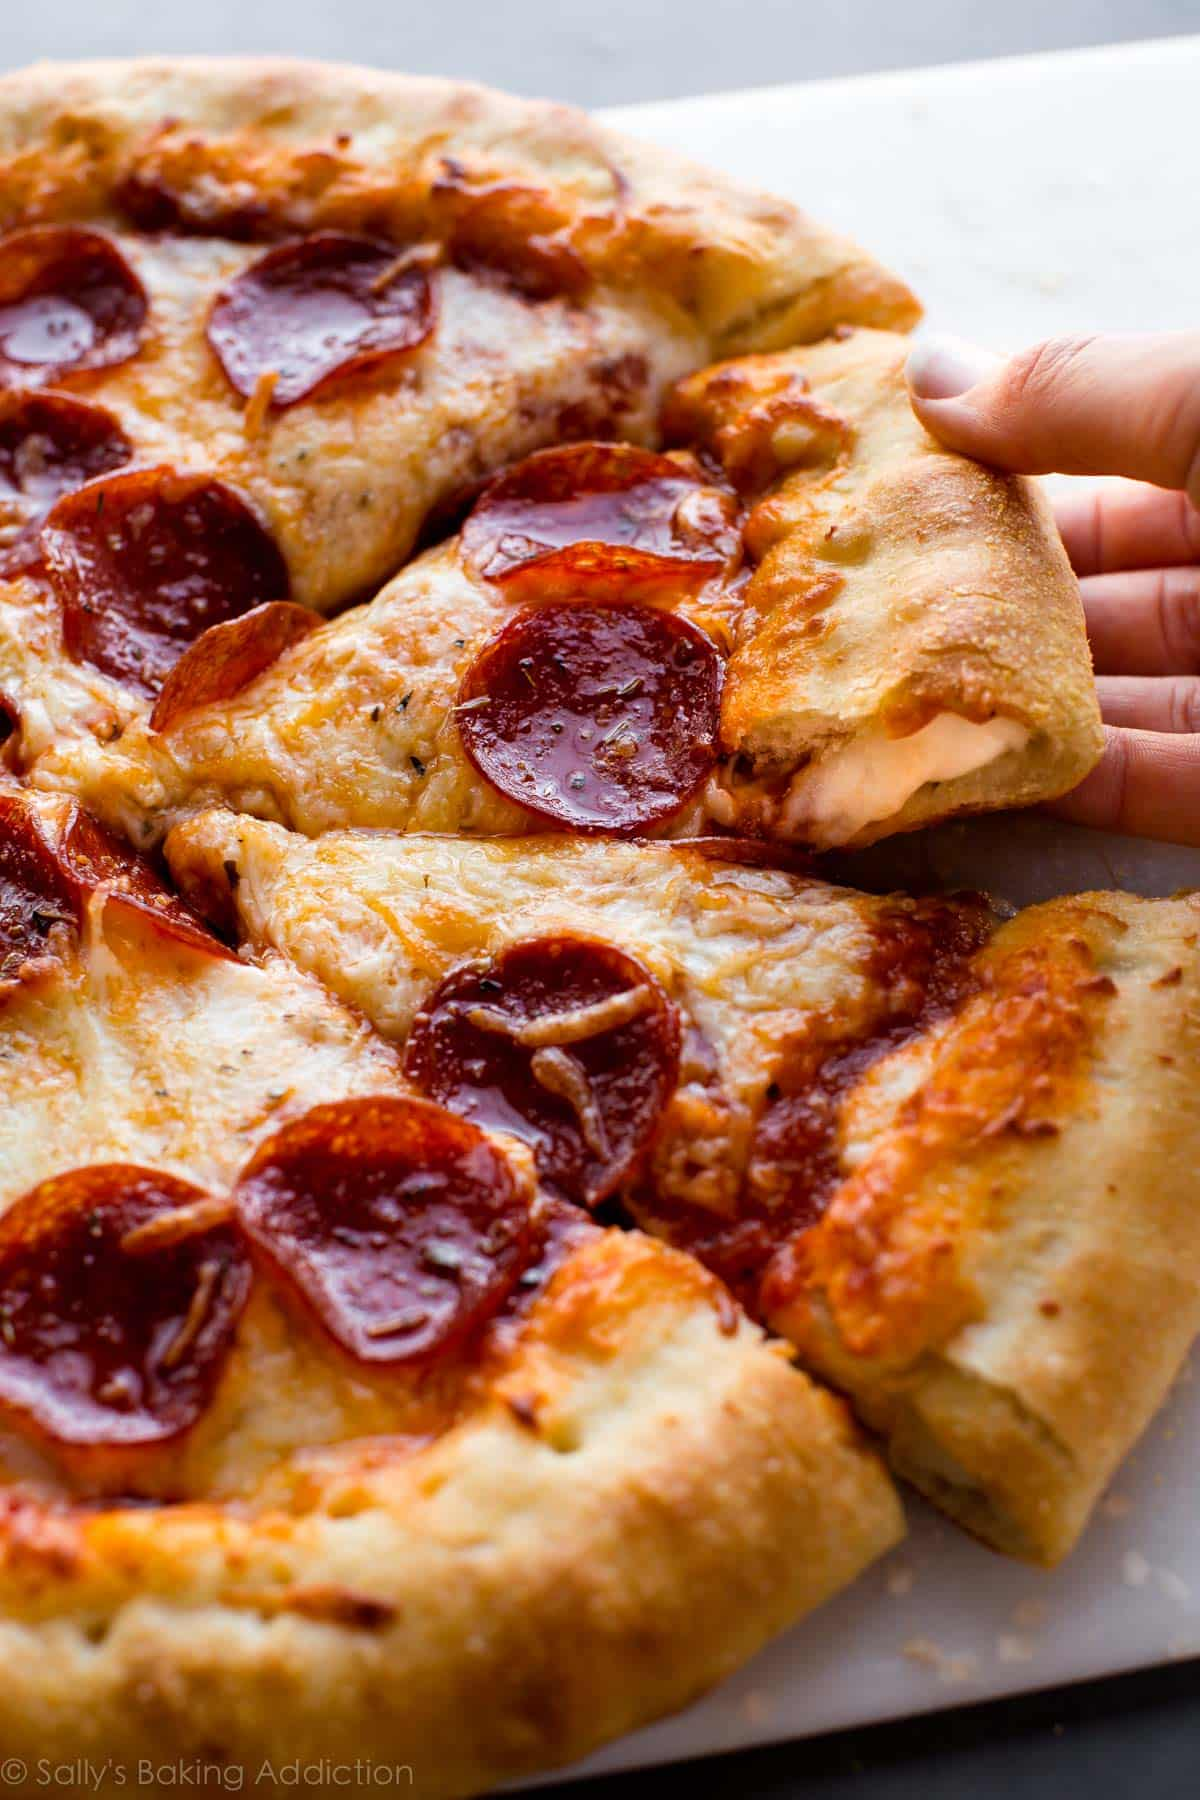 How to make stuffed crust cheese pepperoni pizza on sallysbakingaddiction.com EASY homemade pizza crust!